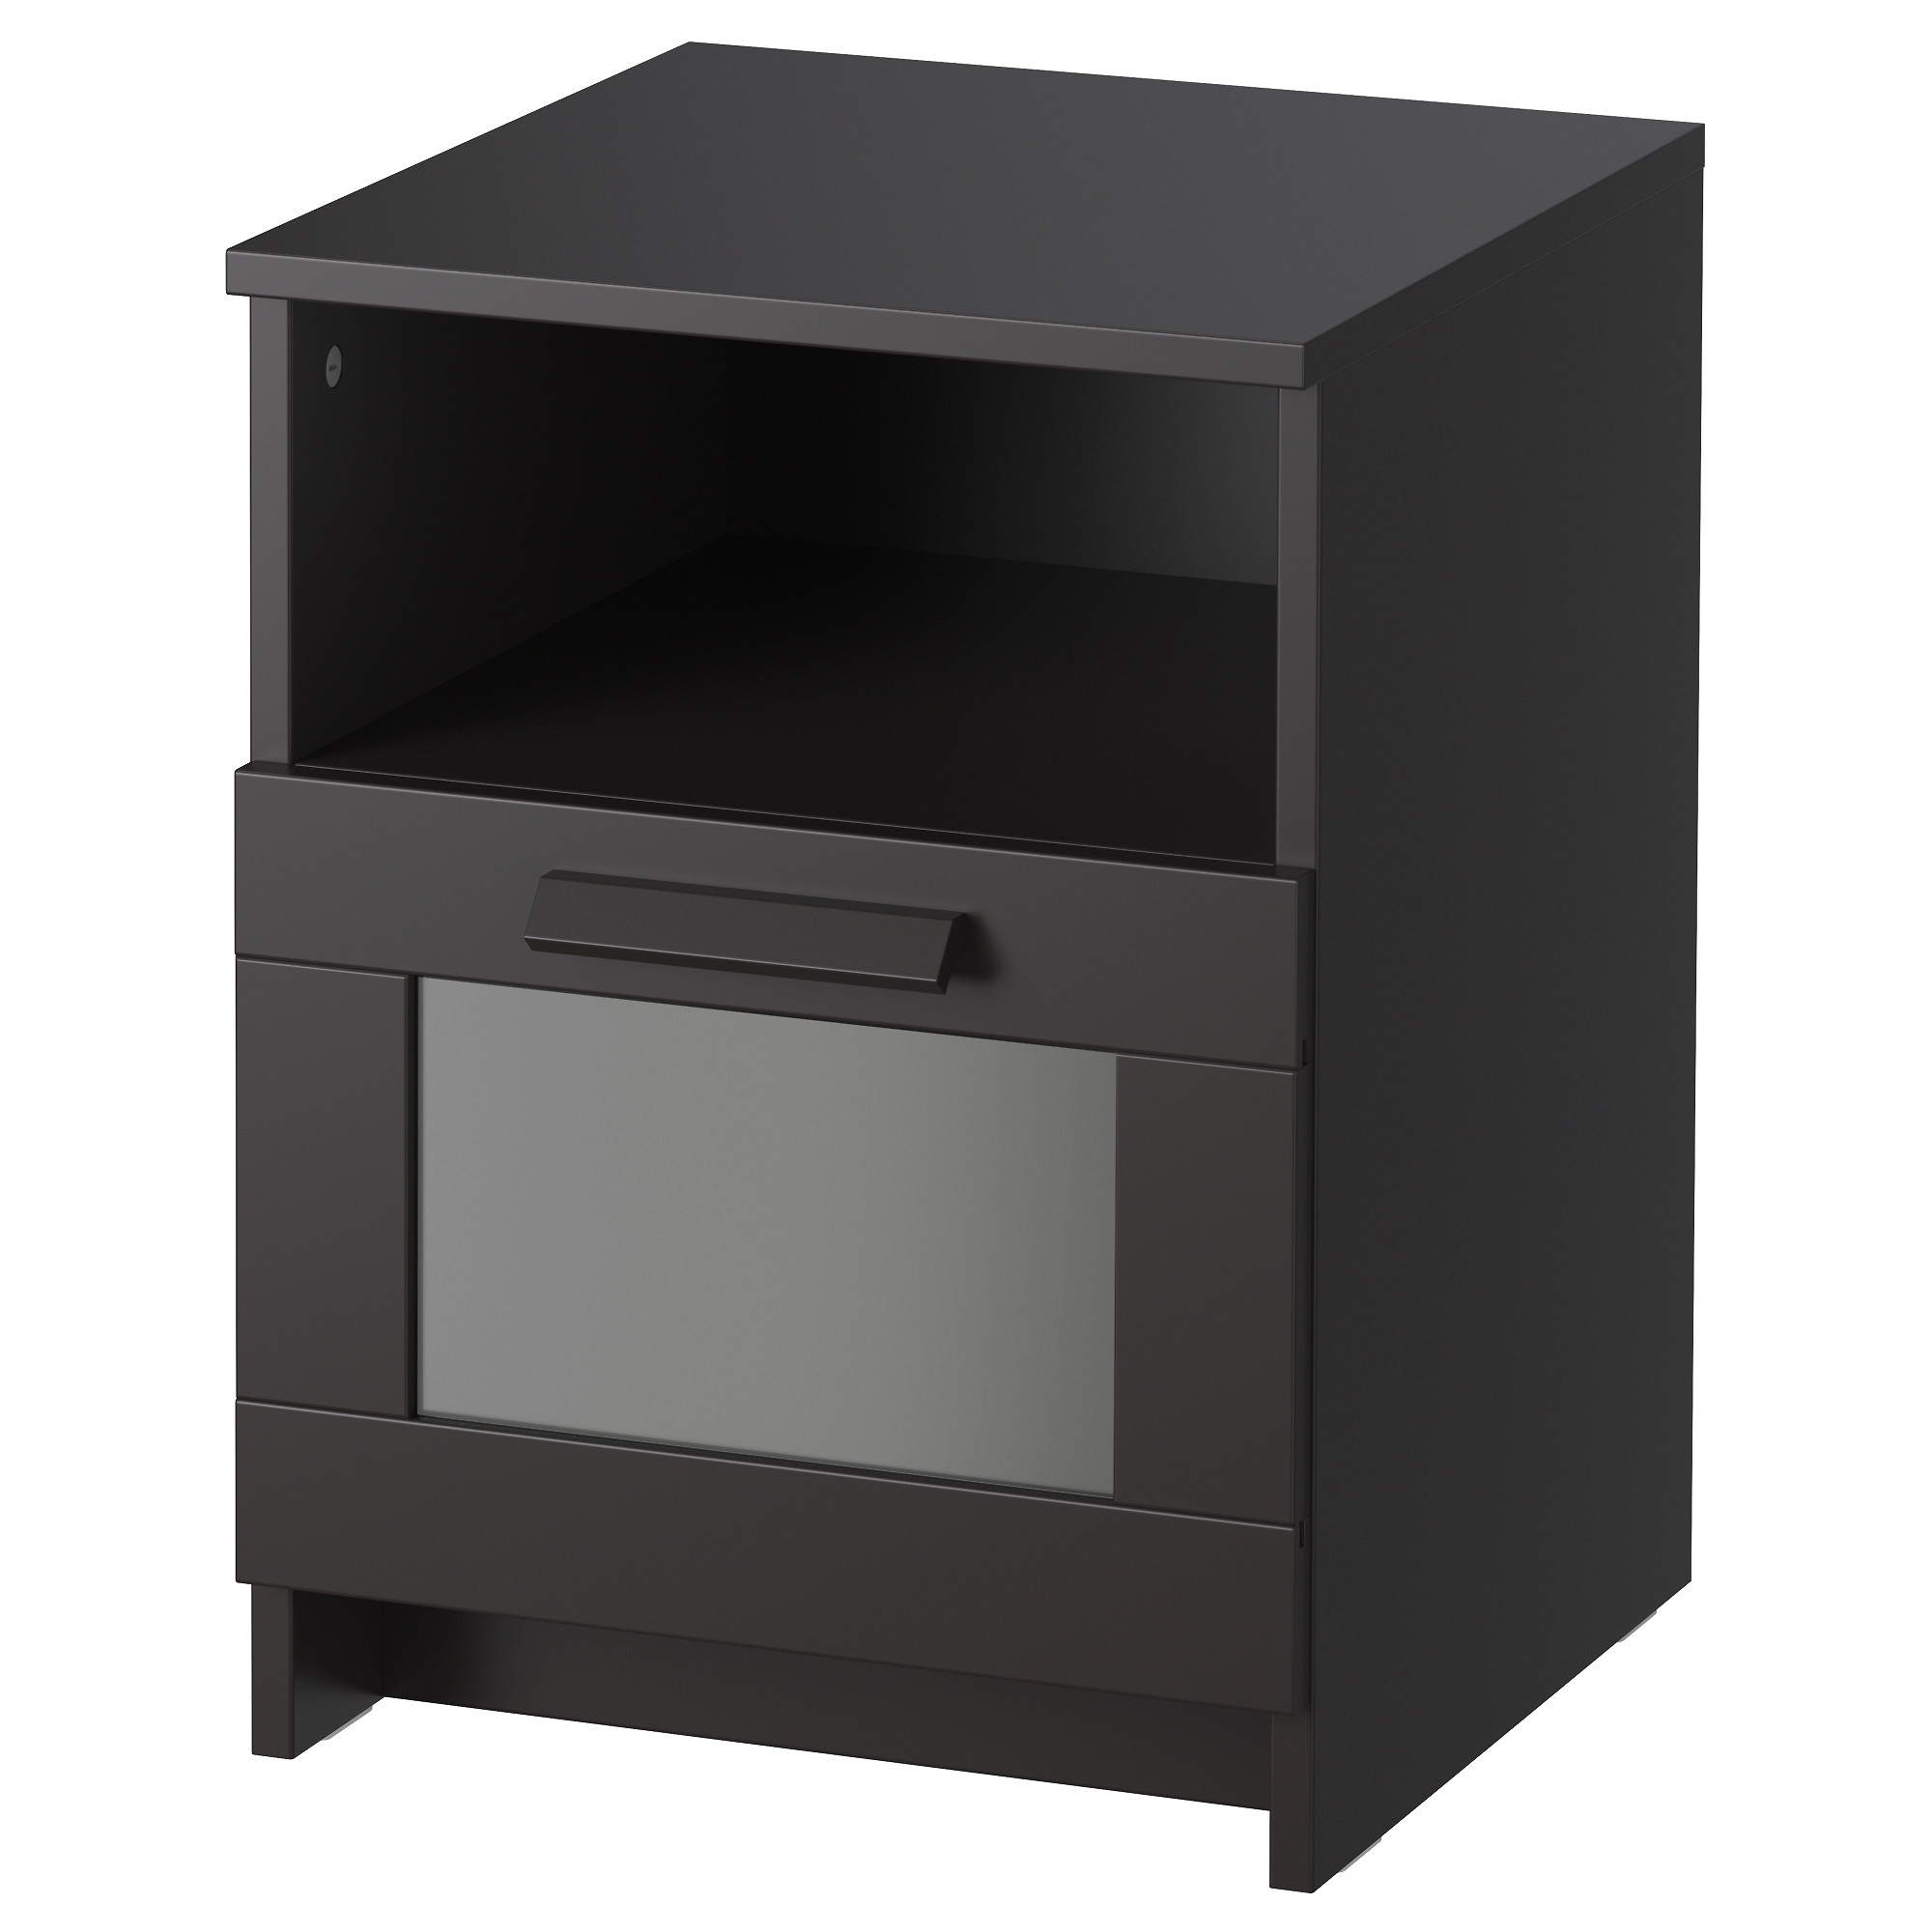 Superb BRIMNES Nightstand   Black   IKEA